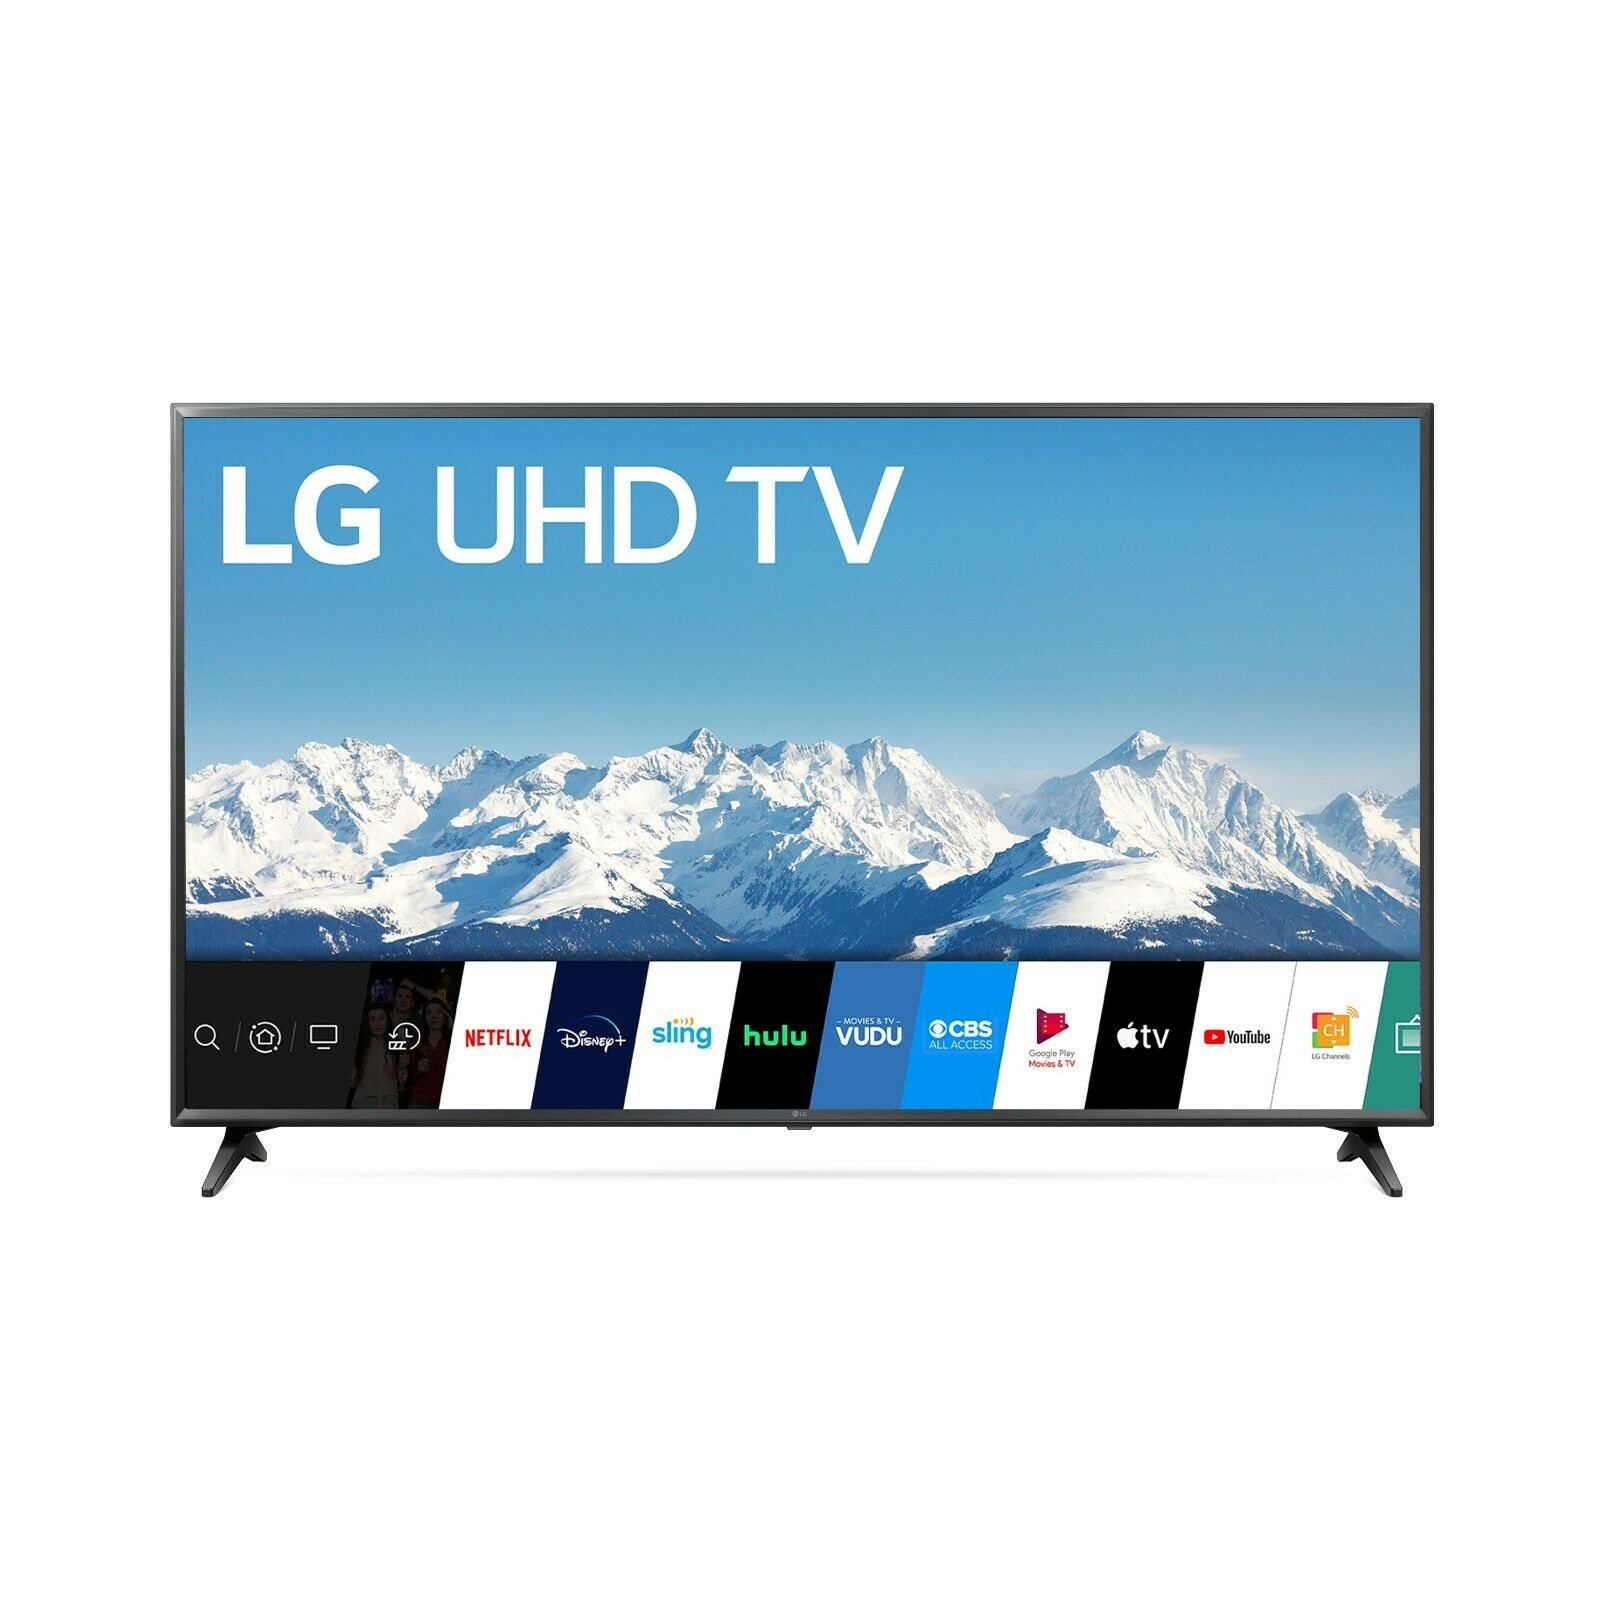 LG 65 Class Quad Core 4K LED UHD 2160P HDR Smart TV  (2020 Model) Black Friday. Available Now for 639.98